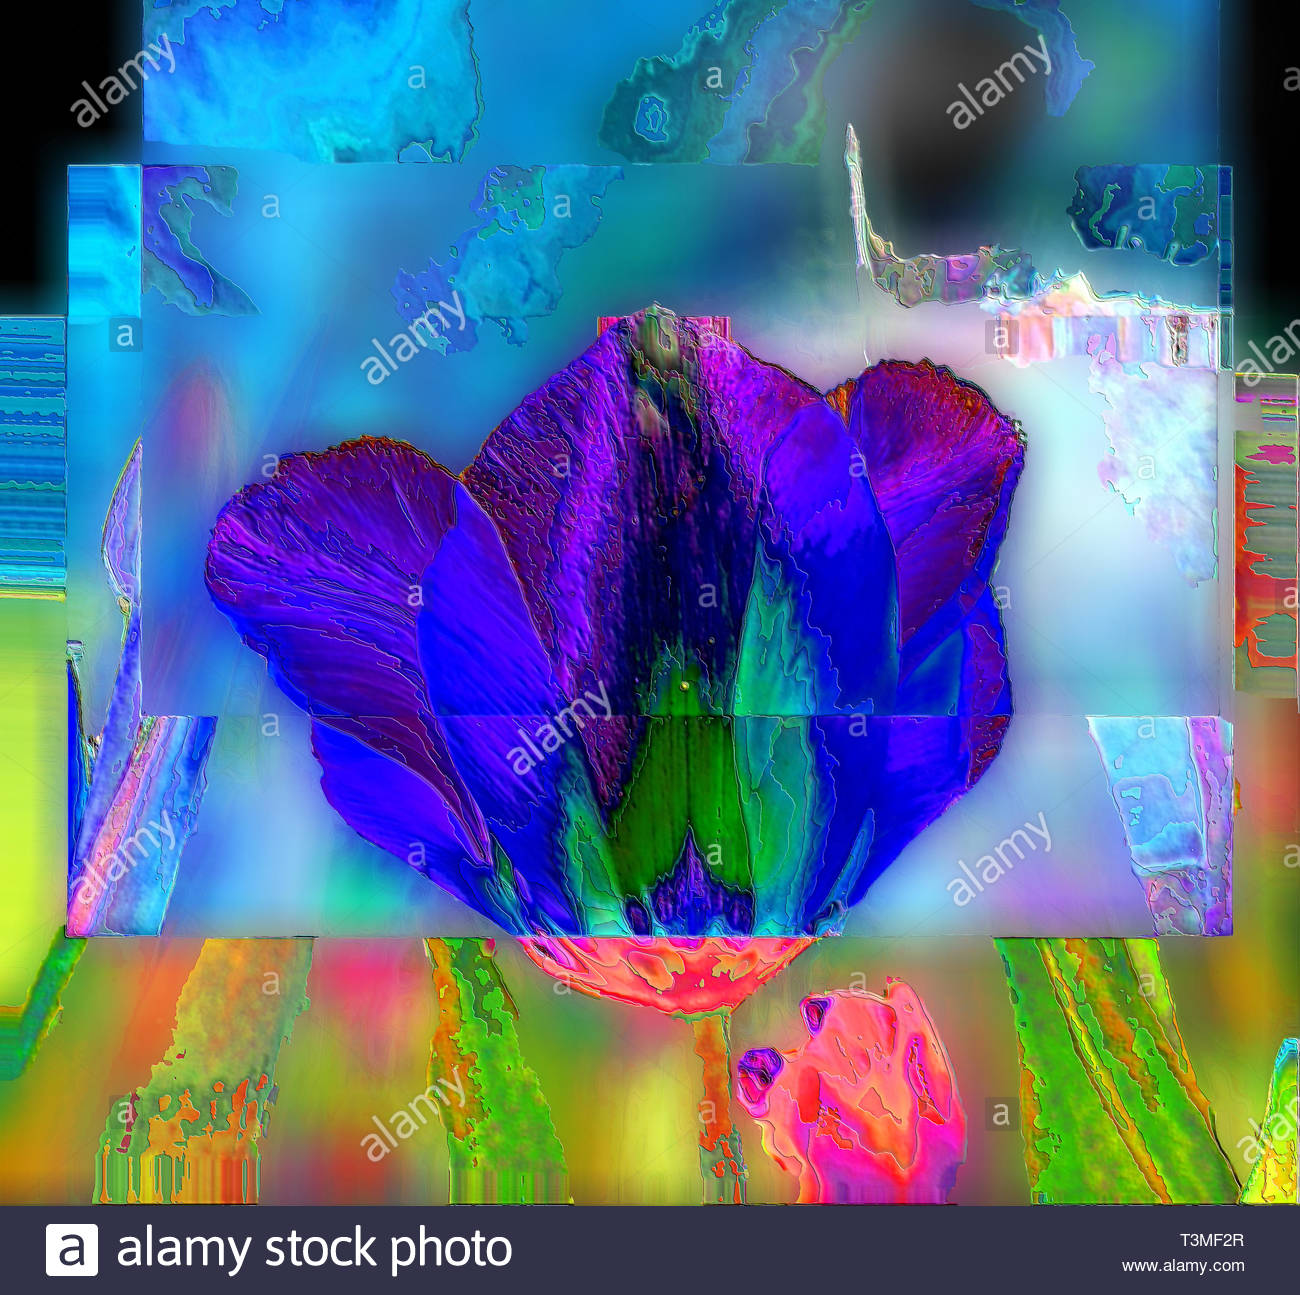 Vibrant abstract indigo tulip head, textured with multi-layered patchwork look, metal foil finish. - Stock Image